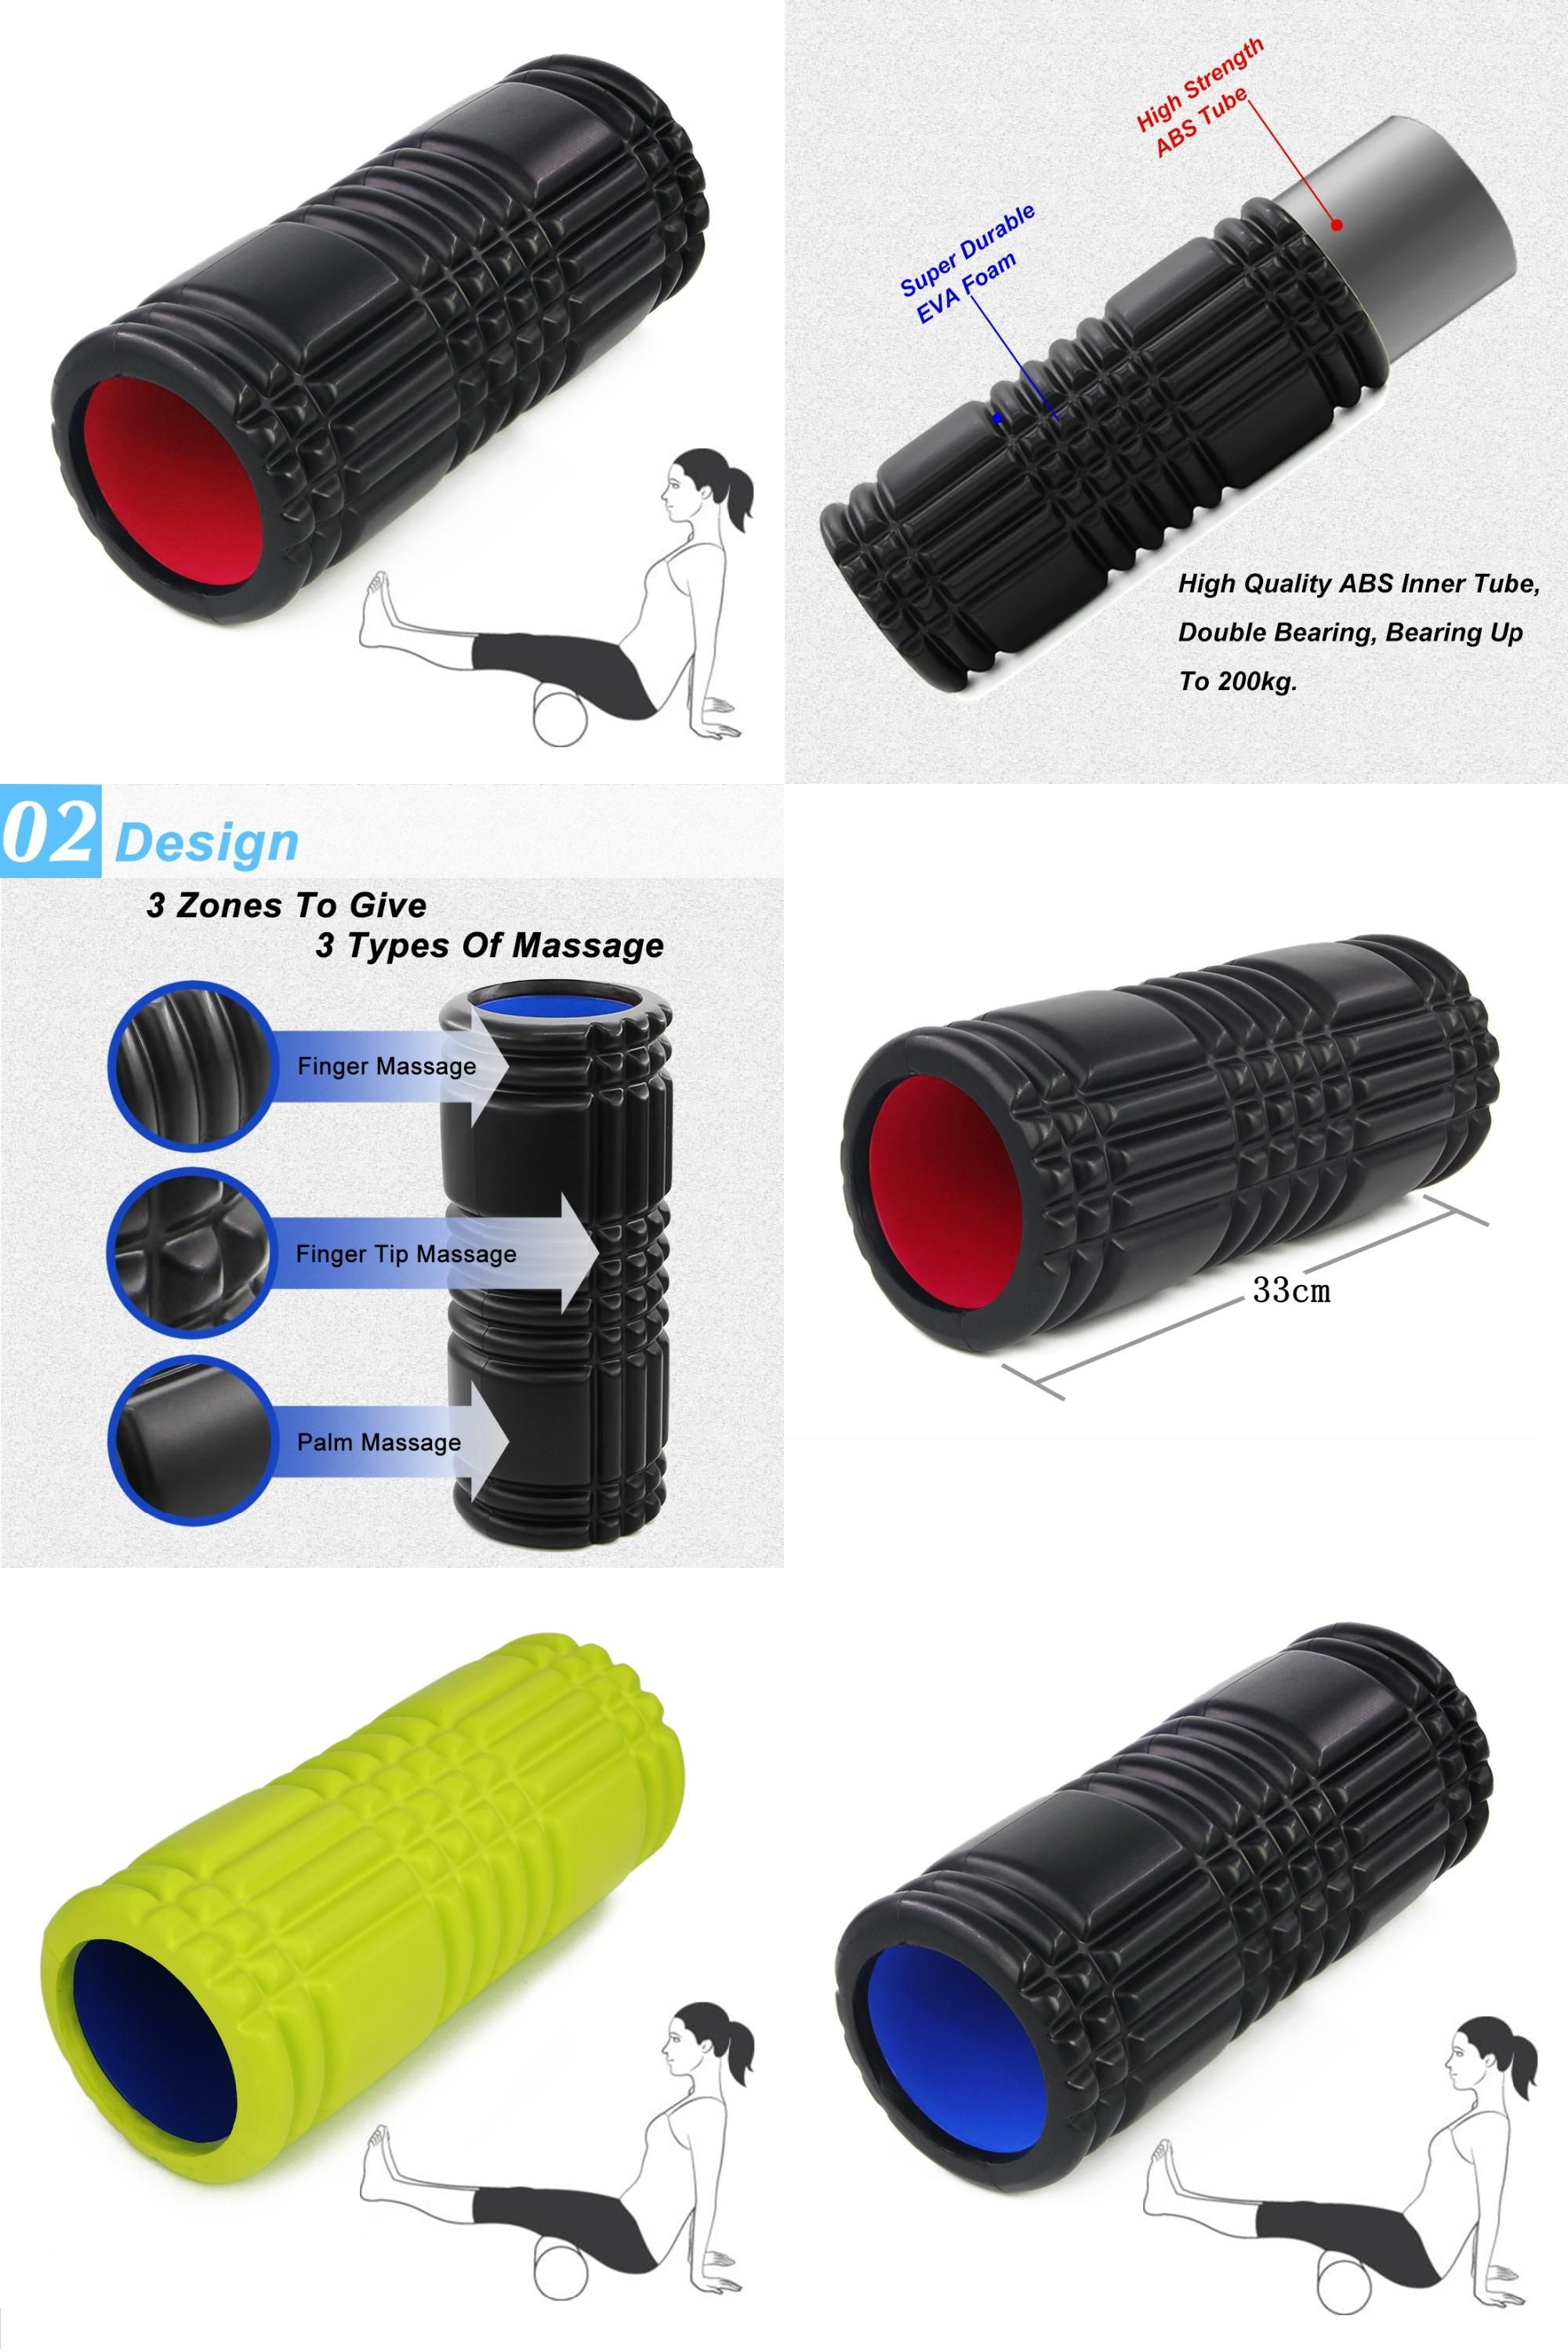 Buy foam roll physical therapy -  Visit To Buy Crossfit Eva Foam Roller Massage Roller Floating Point Fitness Yoga Roller